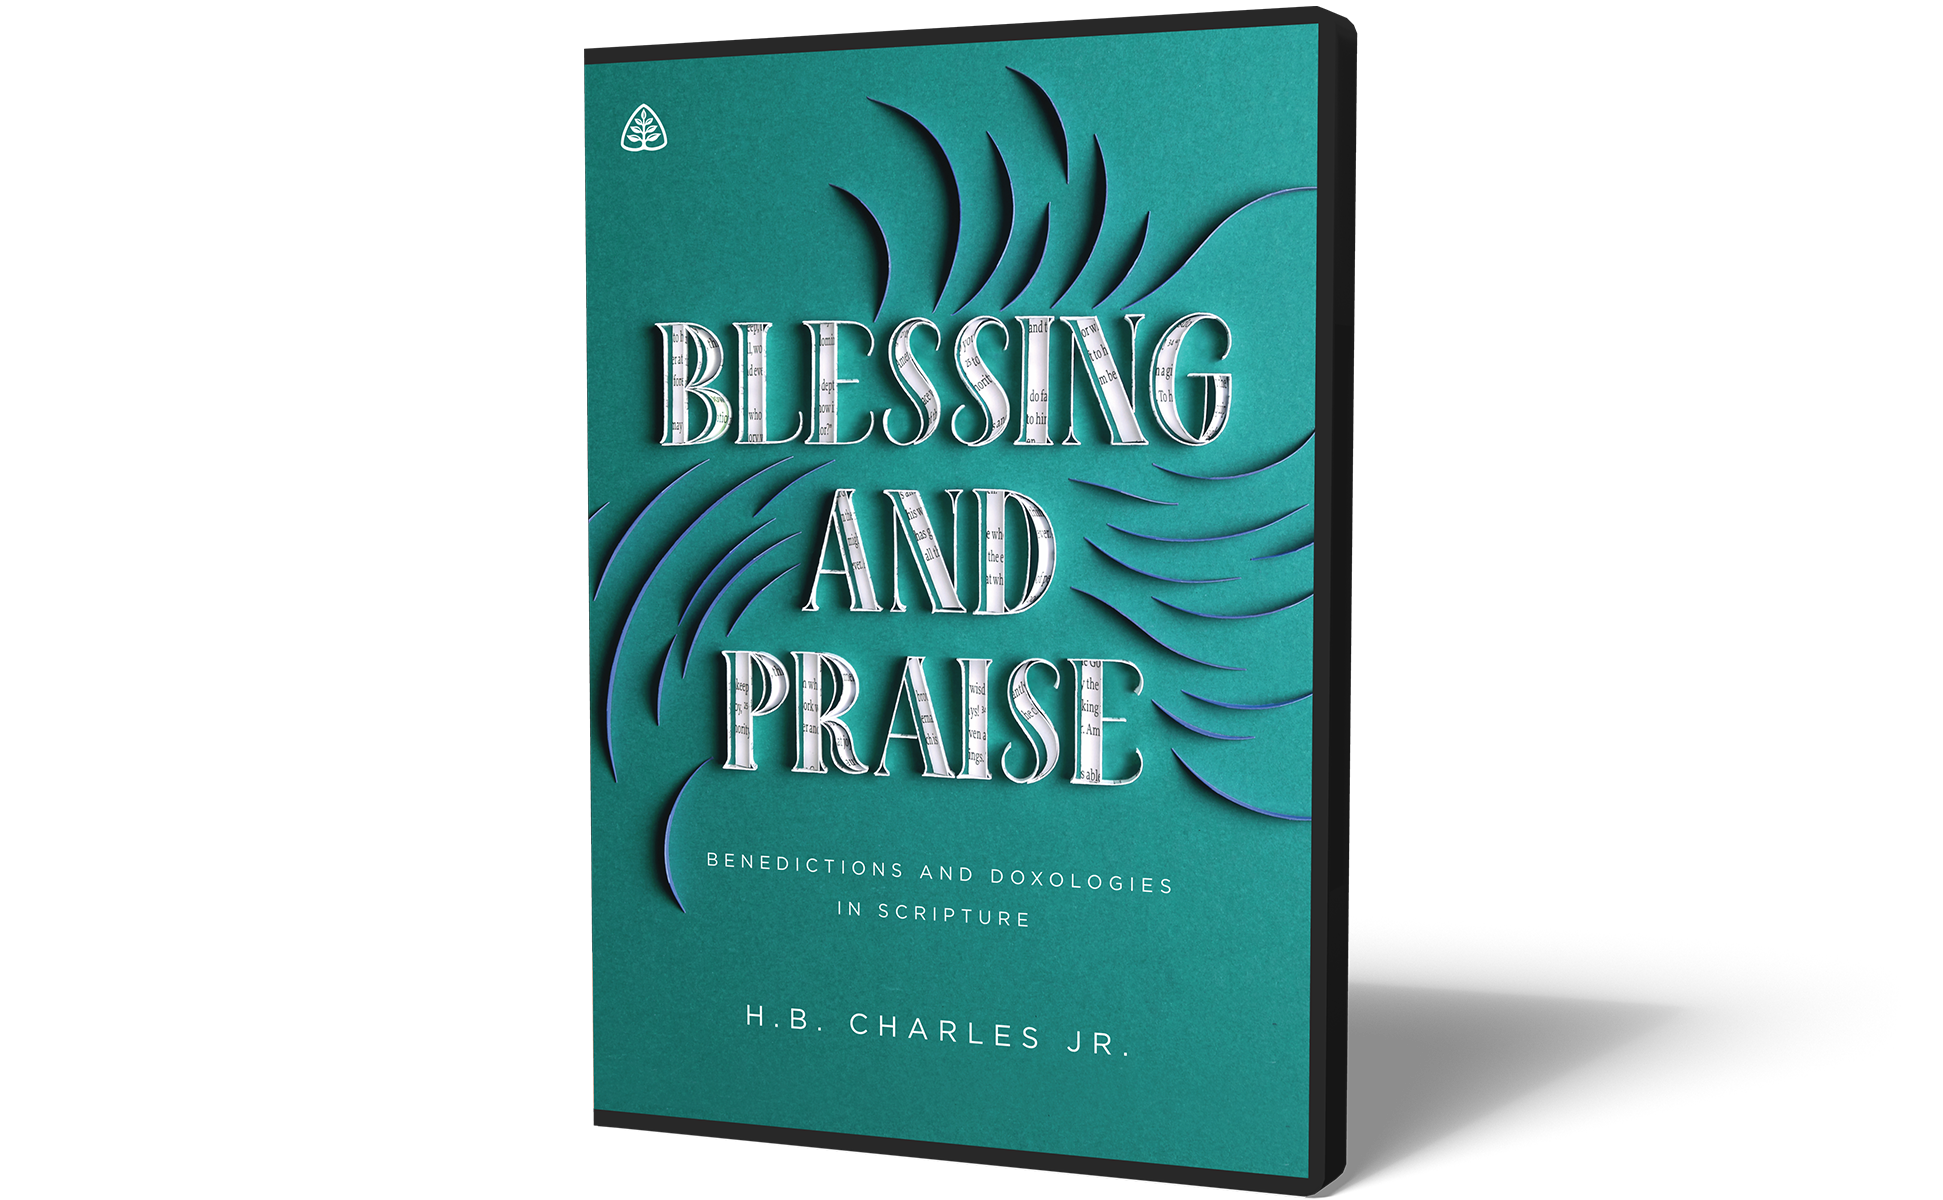 Blessing and Praise: Benedictions & Doxologies in Scripture